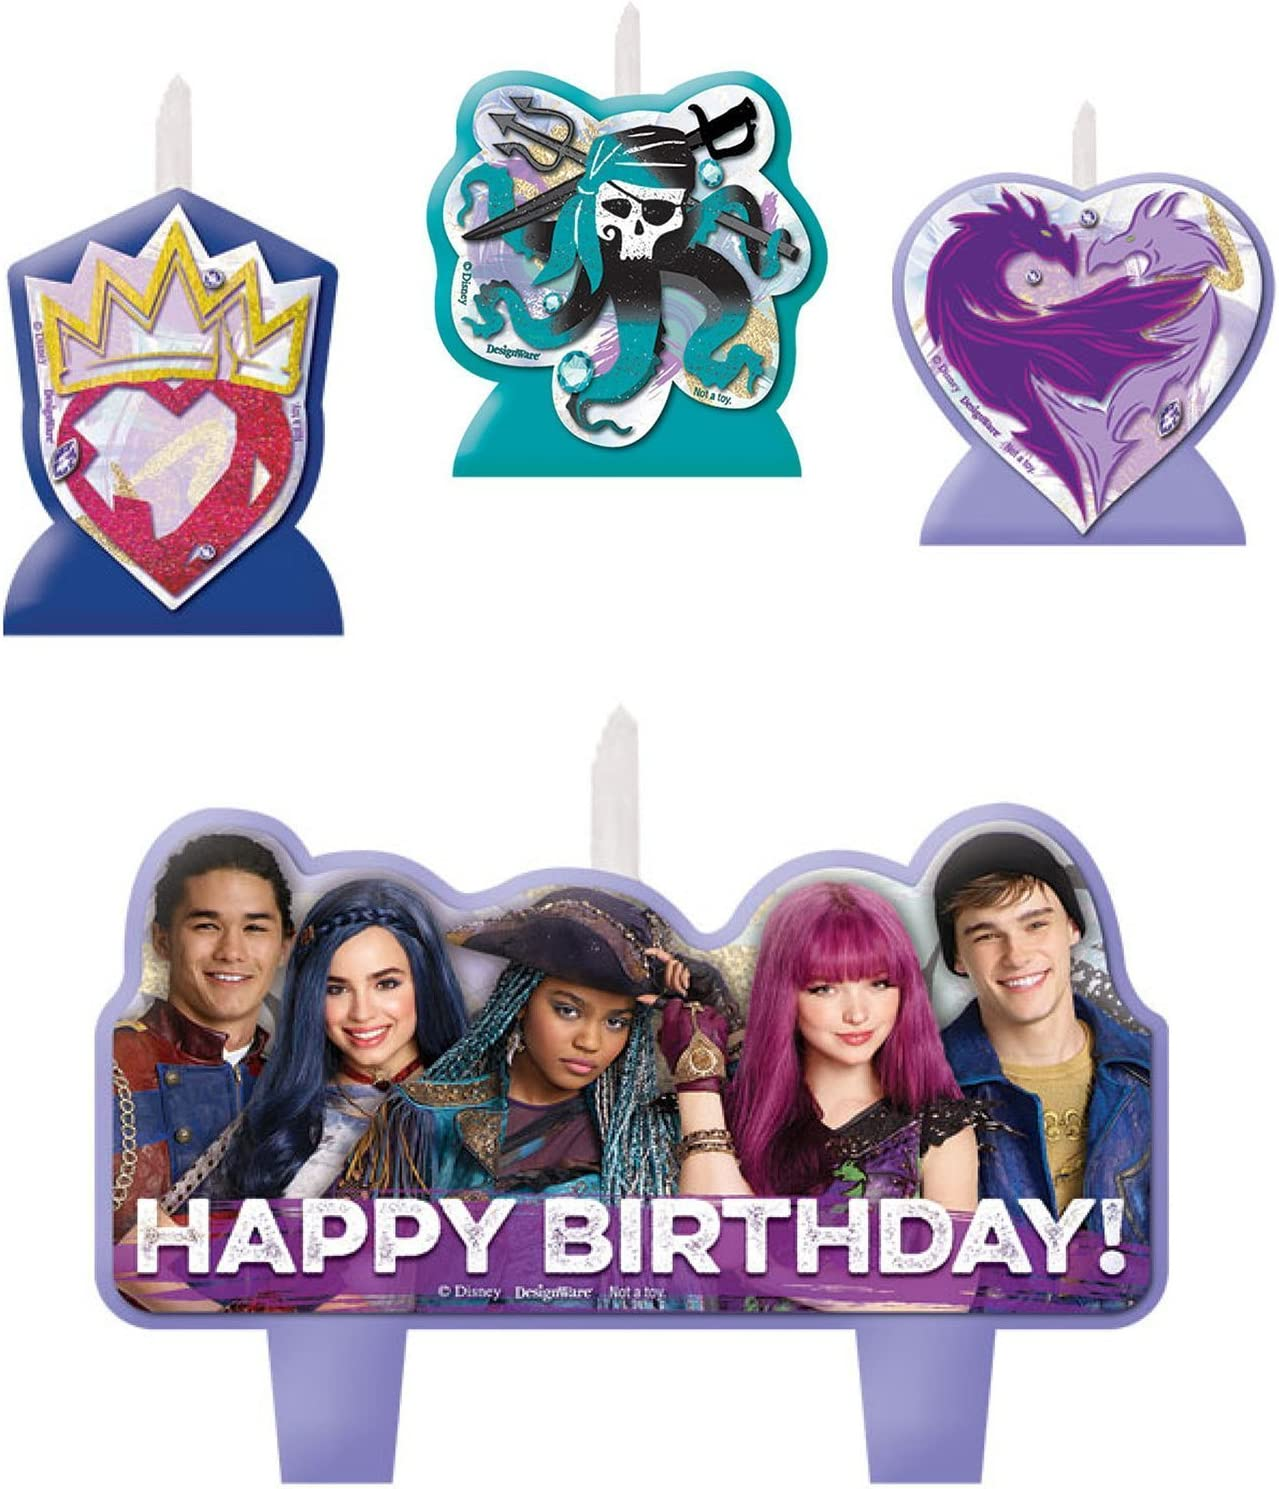 Amazon.com: Disney Descendants 2 Vela de cumpleaños set ...